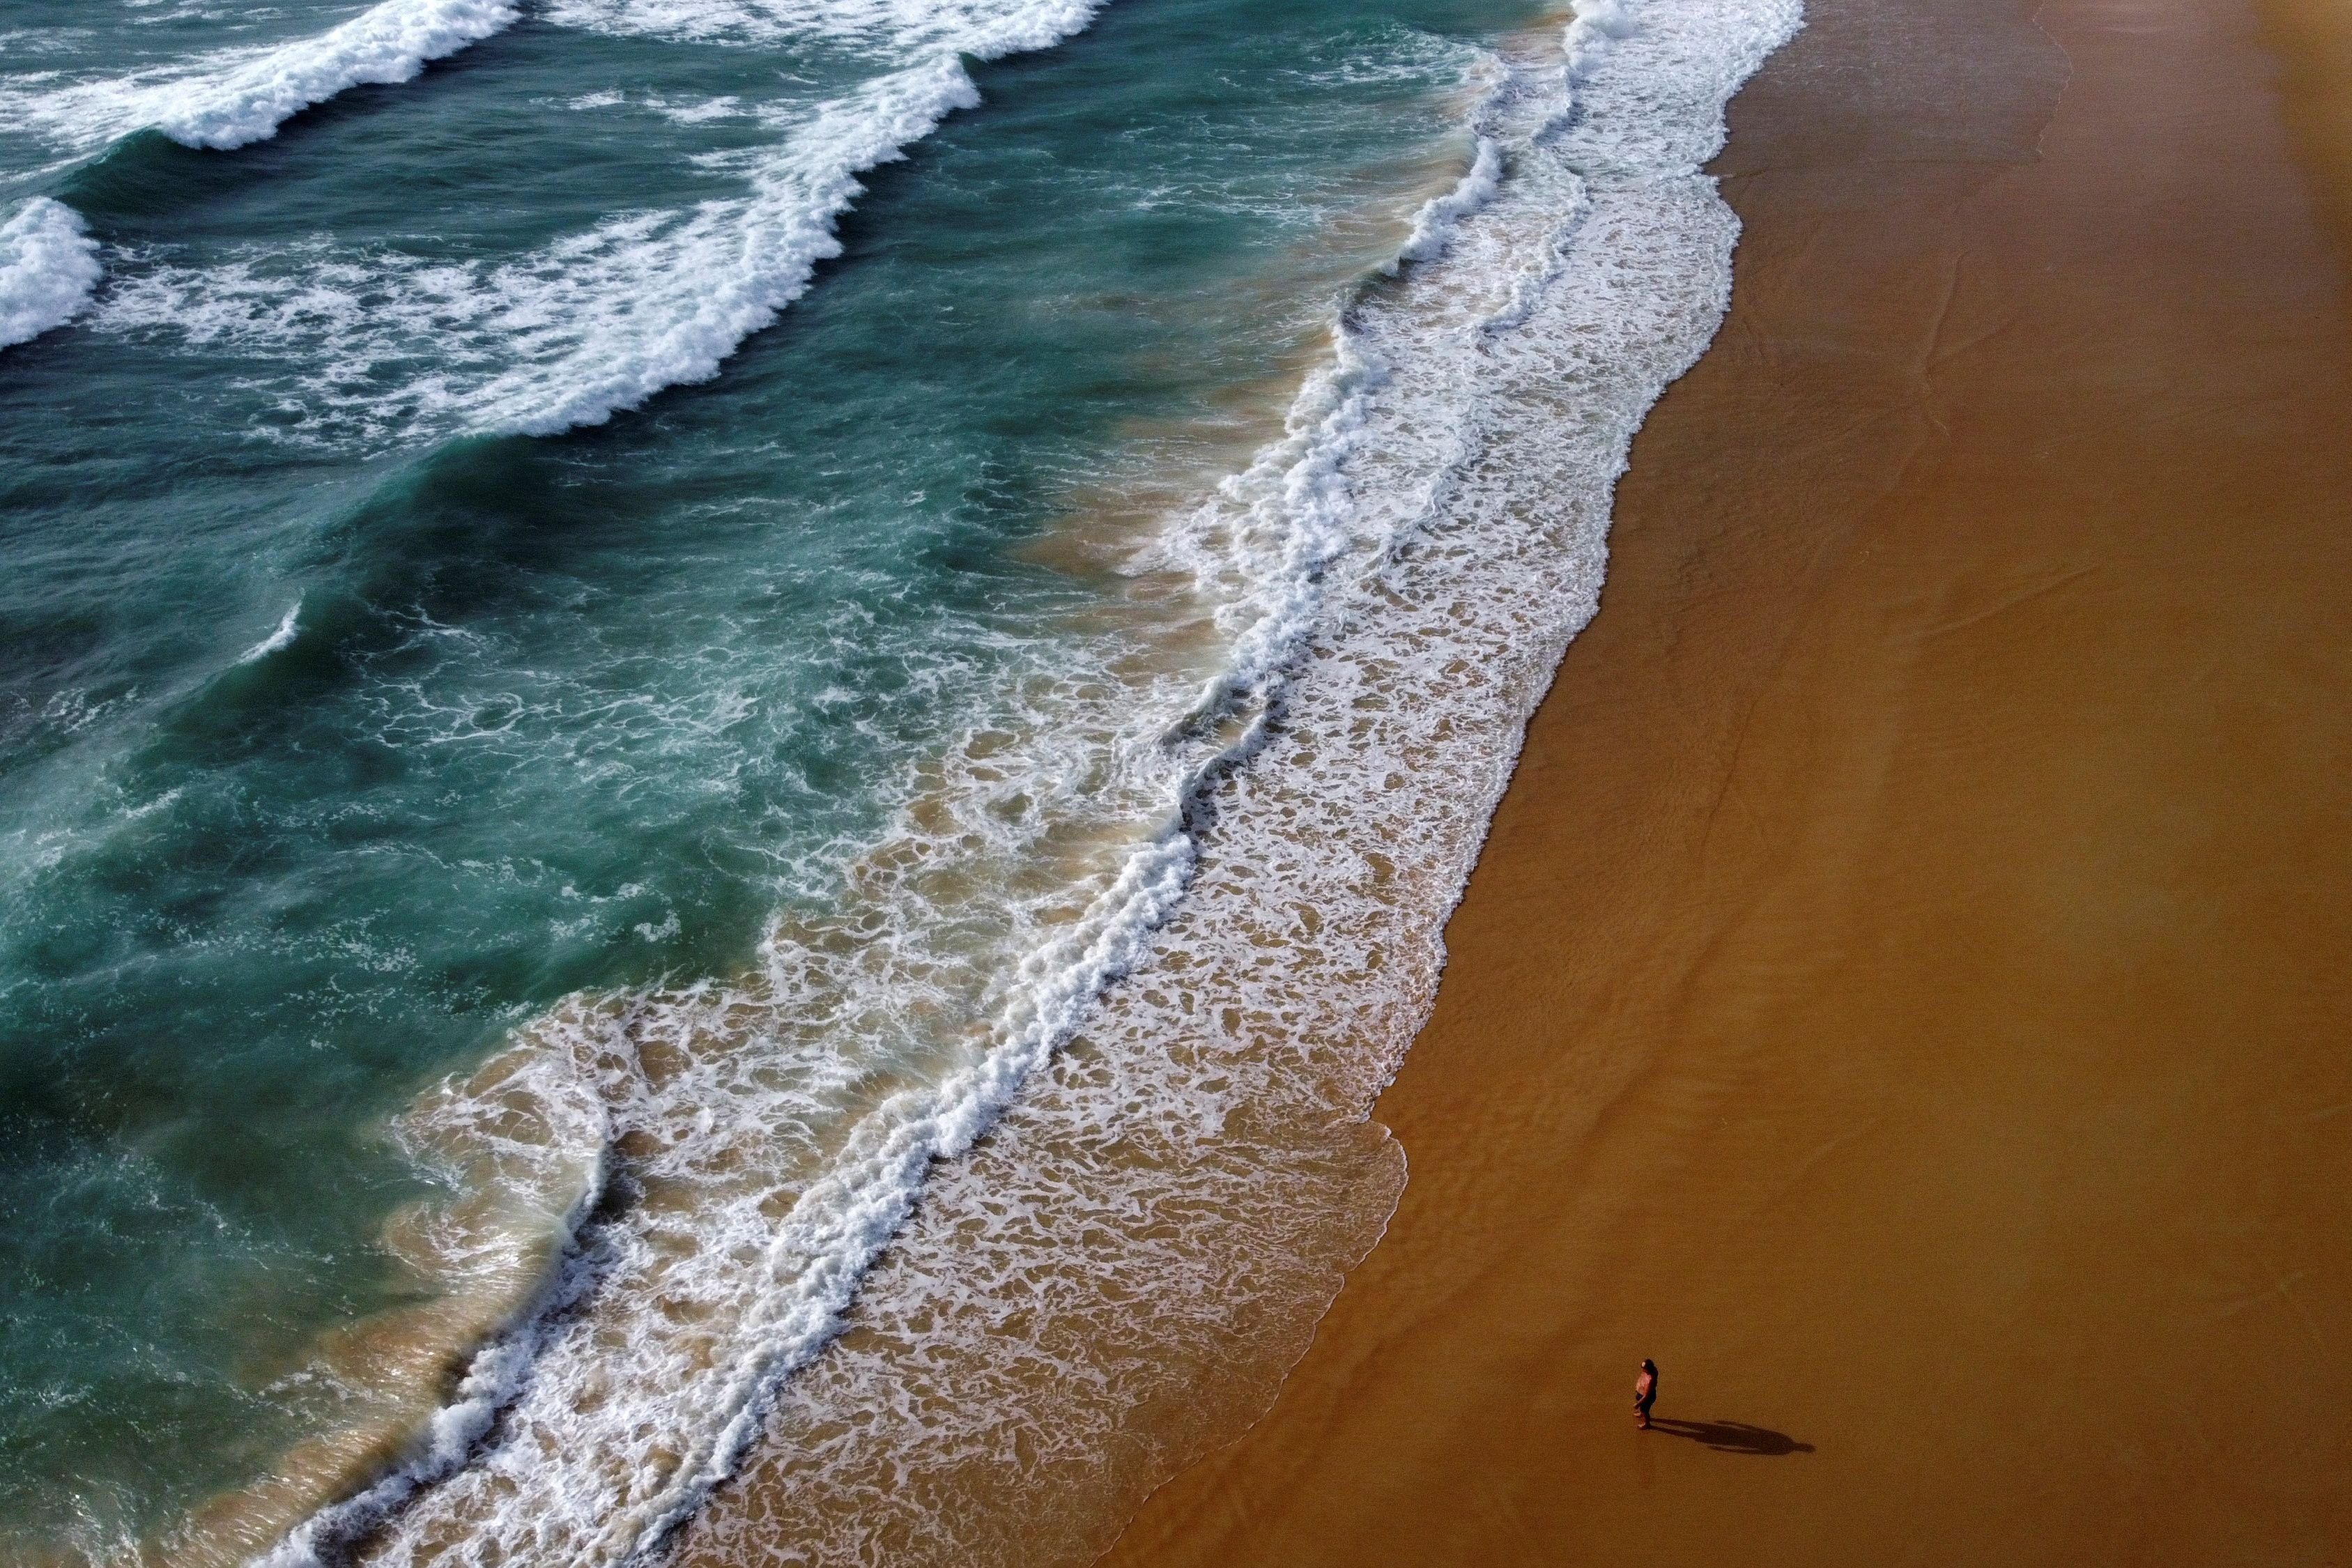 A man walks at the empty Karon beach on Phuket Island, Thailand in April 1, 2021. Picture taken April 1, 2021 with a drone. REUTERS/Jorge Silva - RC2E1N9OLSIF